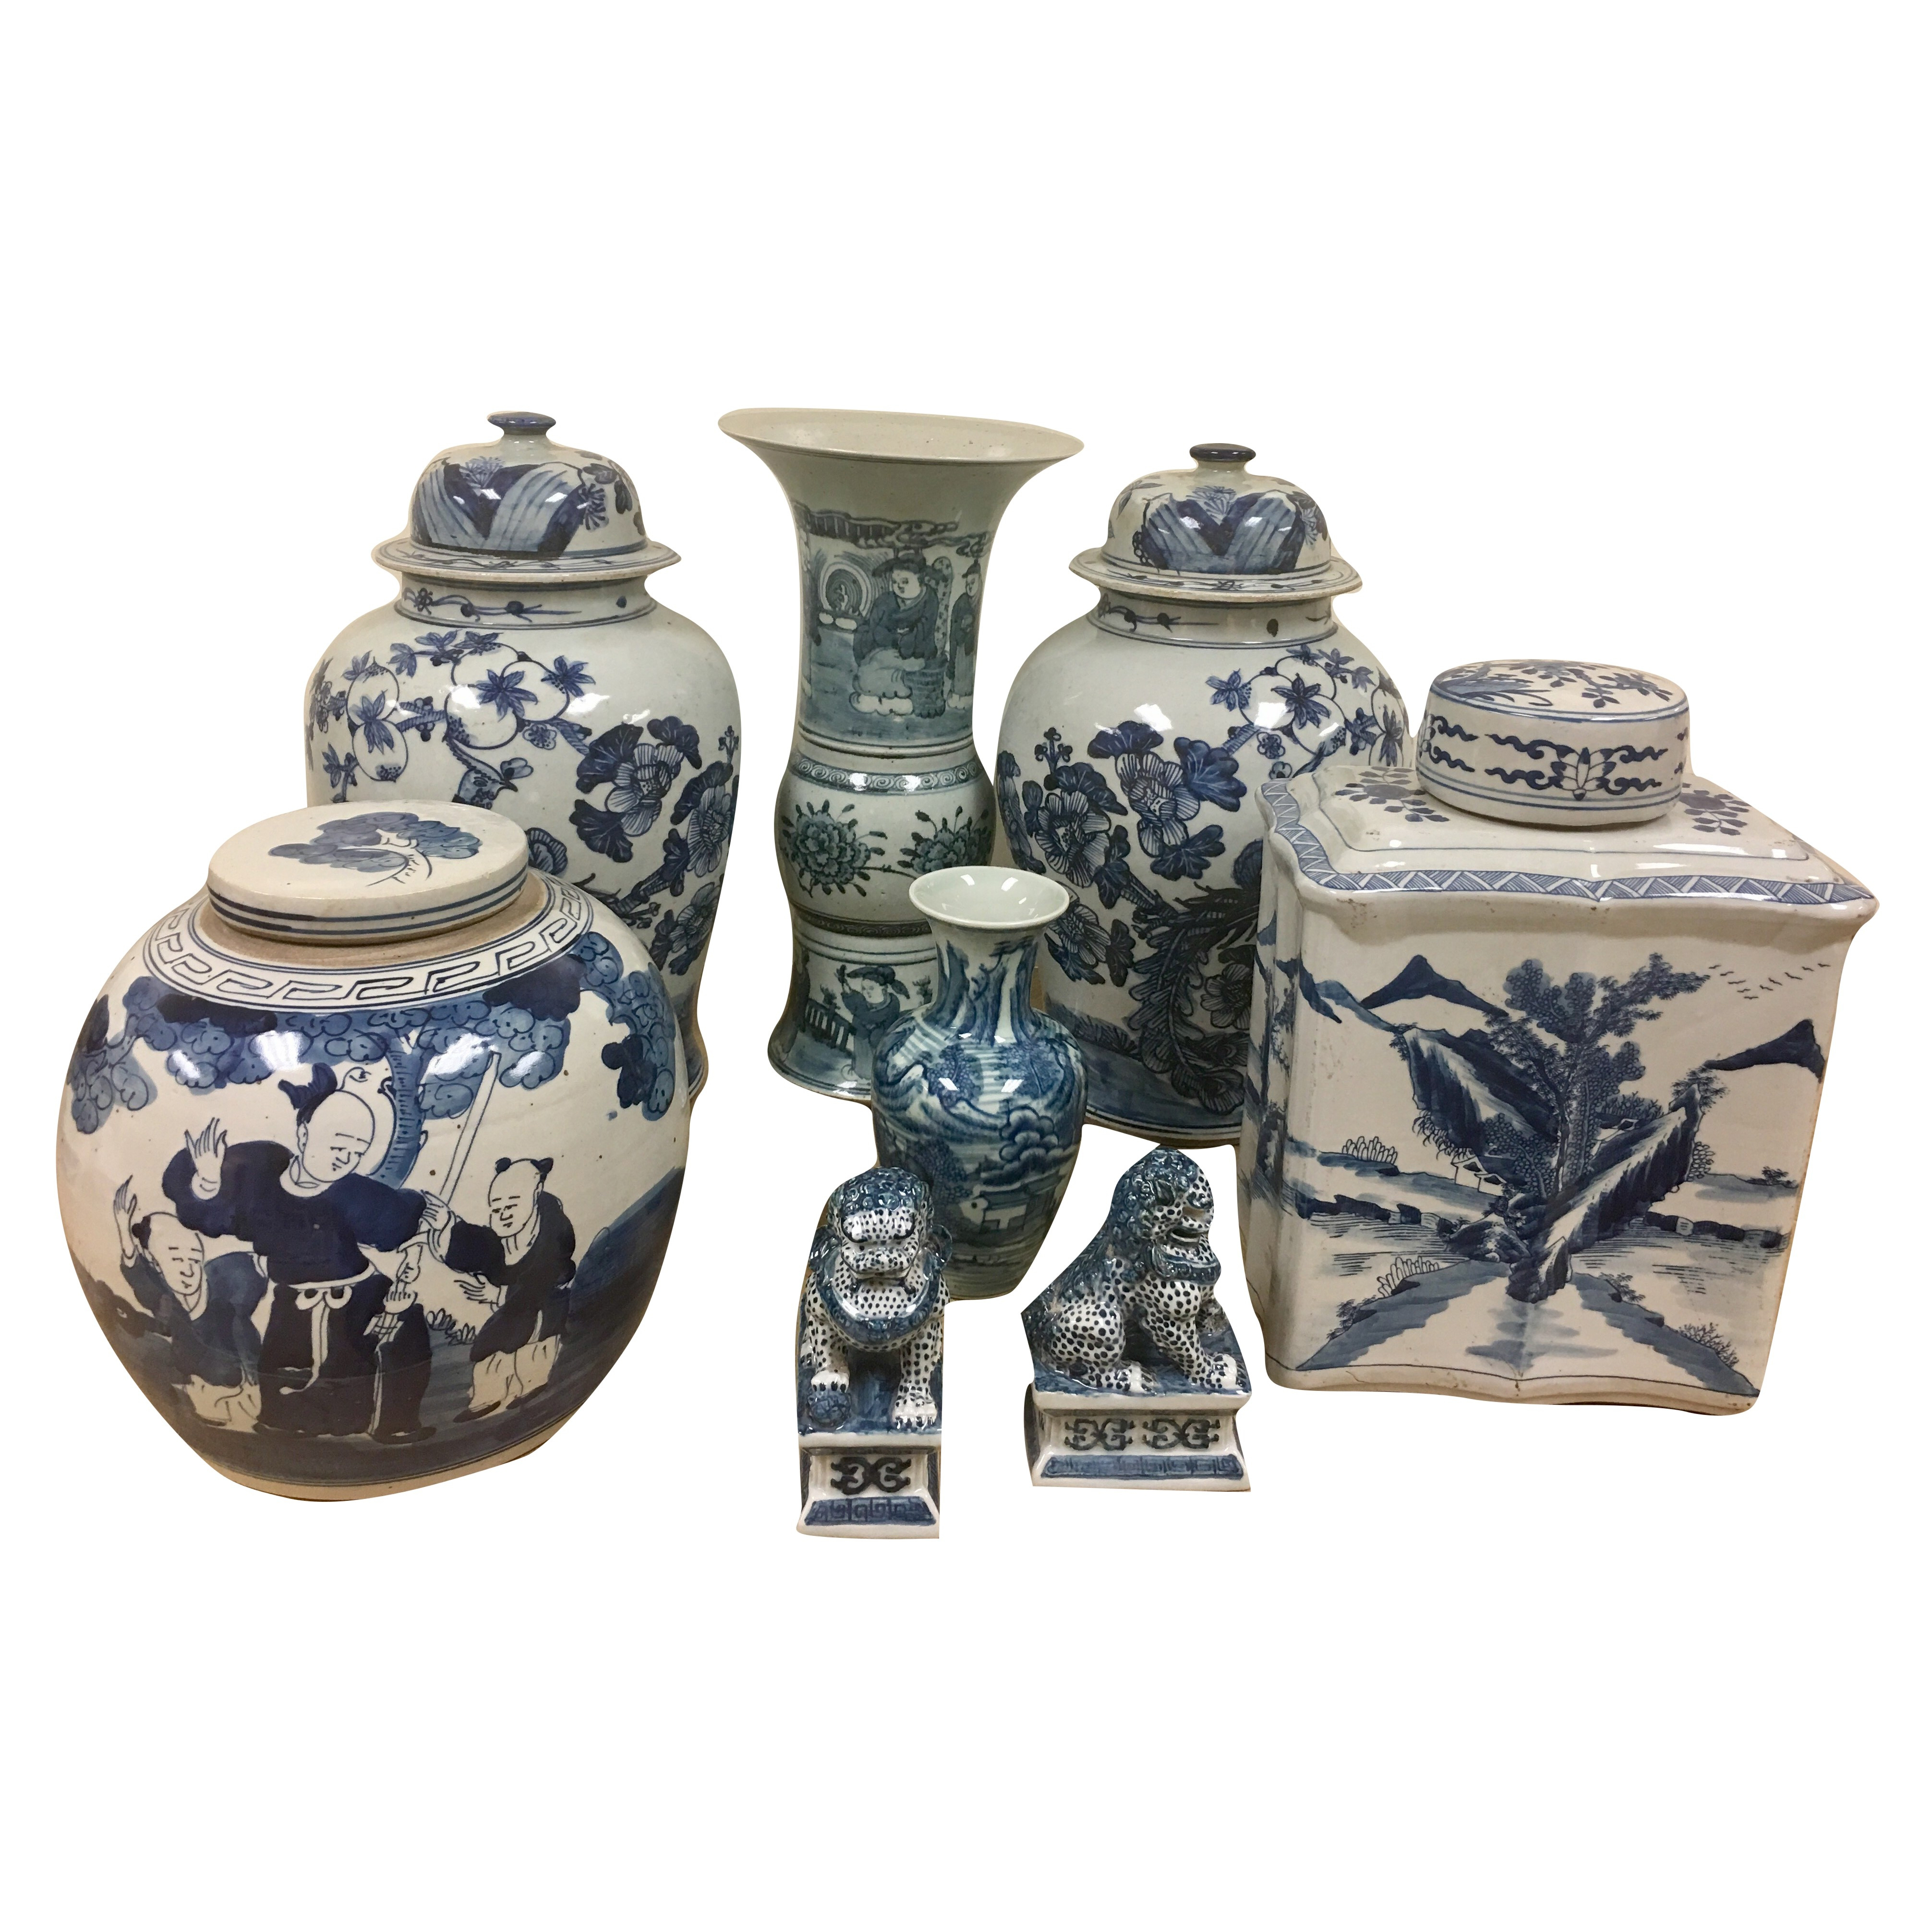 Fabulous beginners set of blue and white #4